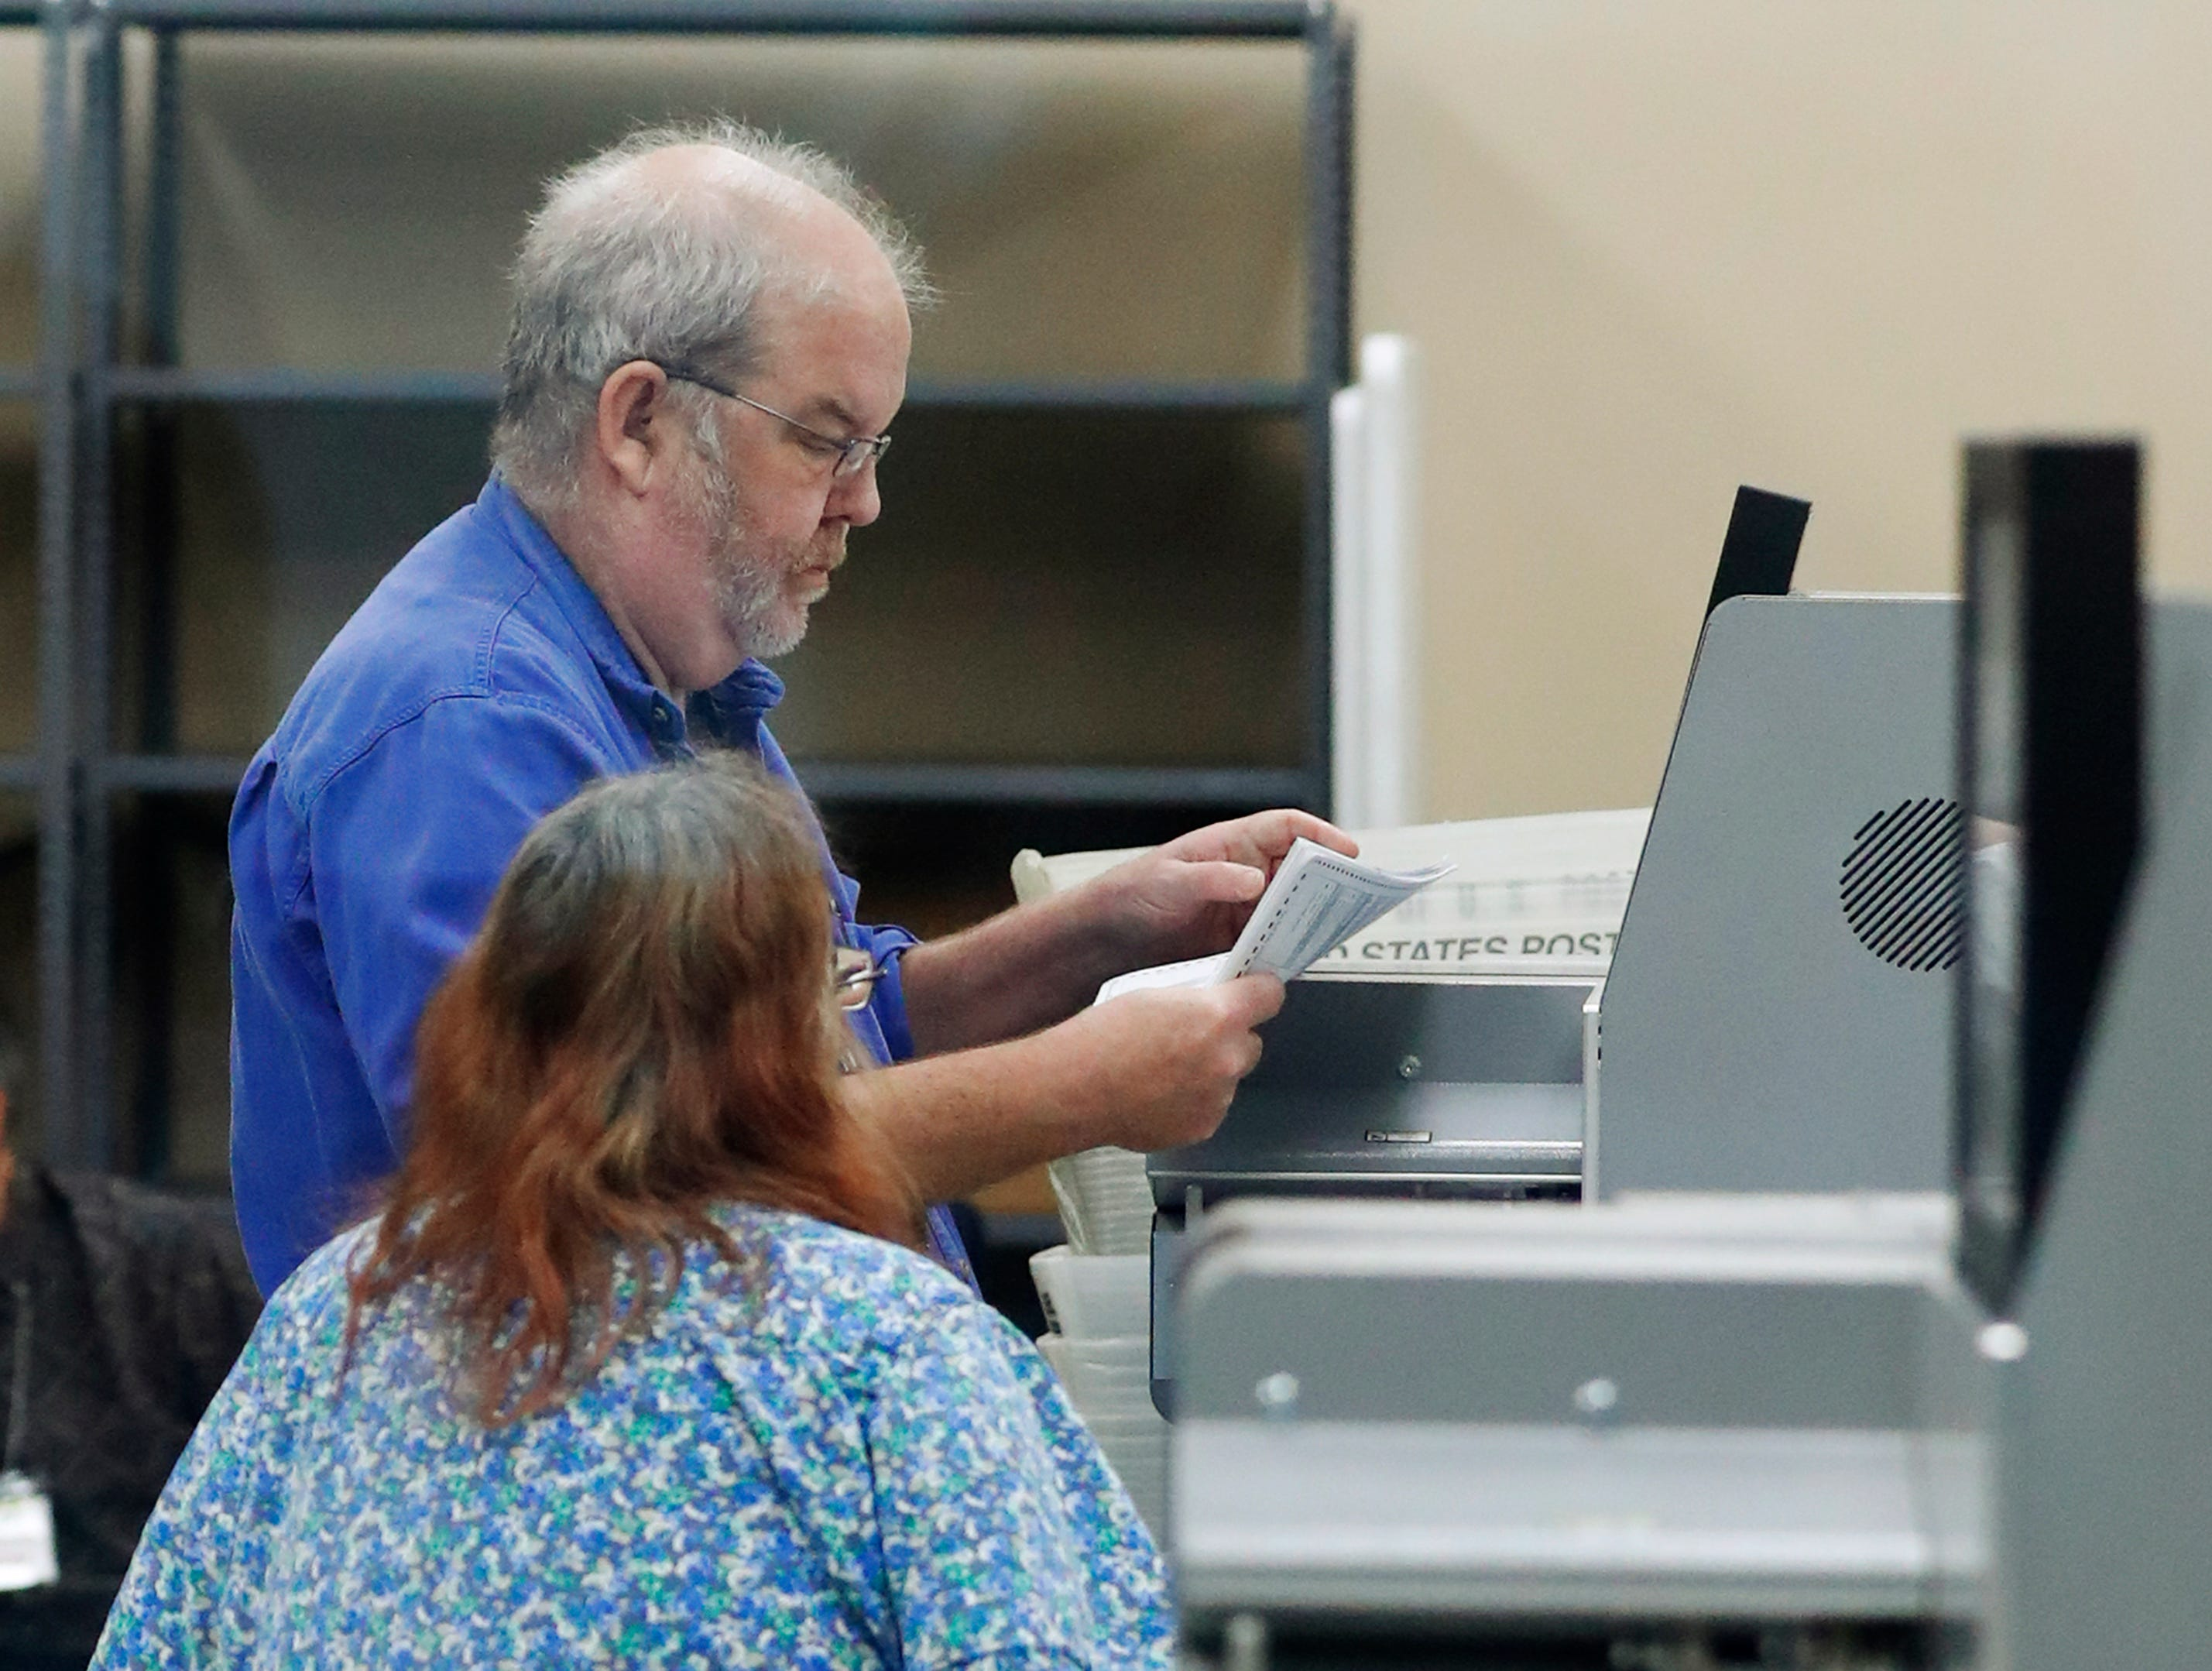 Employees at the Broward County Supervisor of Elections office calibrate machines before counting ballots, Monday, Nov. 12, 2018, in Lauderhill, Fla. Mishaps, protests and litigation are overshadowing the vote recount in Florida's pivotal races for governor and Senate, reviving memories of the 2000 presidential fiasco in the premier political battleground state.